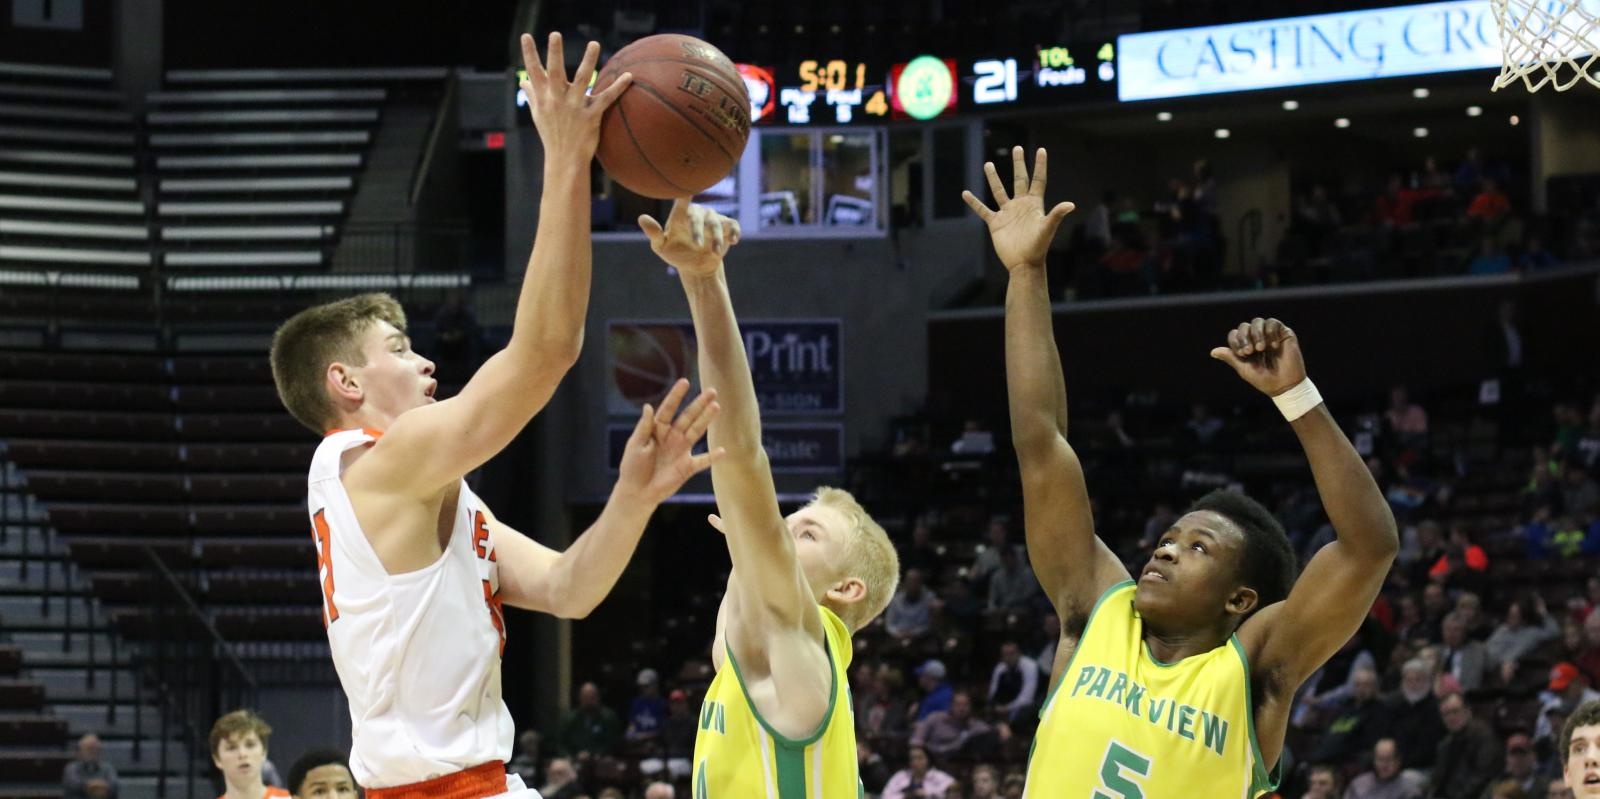 defensive dominance tigers lock down parkview to earn title berth republic tiger sports. Black Bedroom Furniture Sets. Home Design Ideas